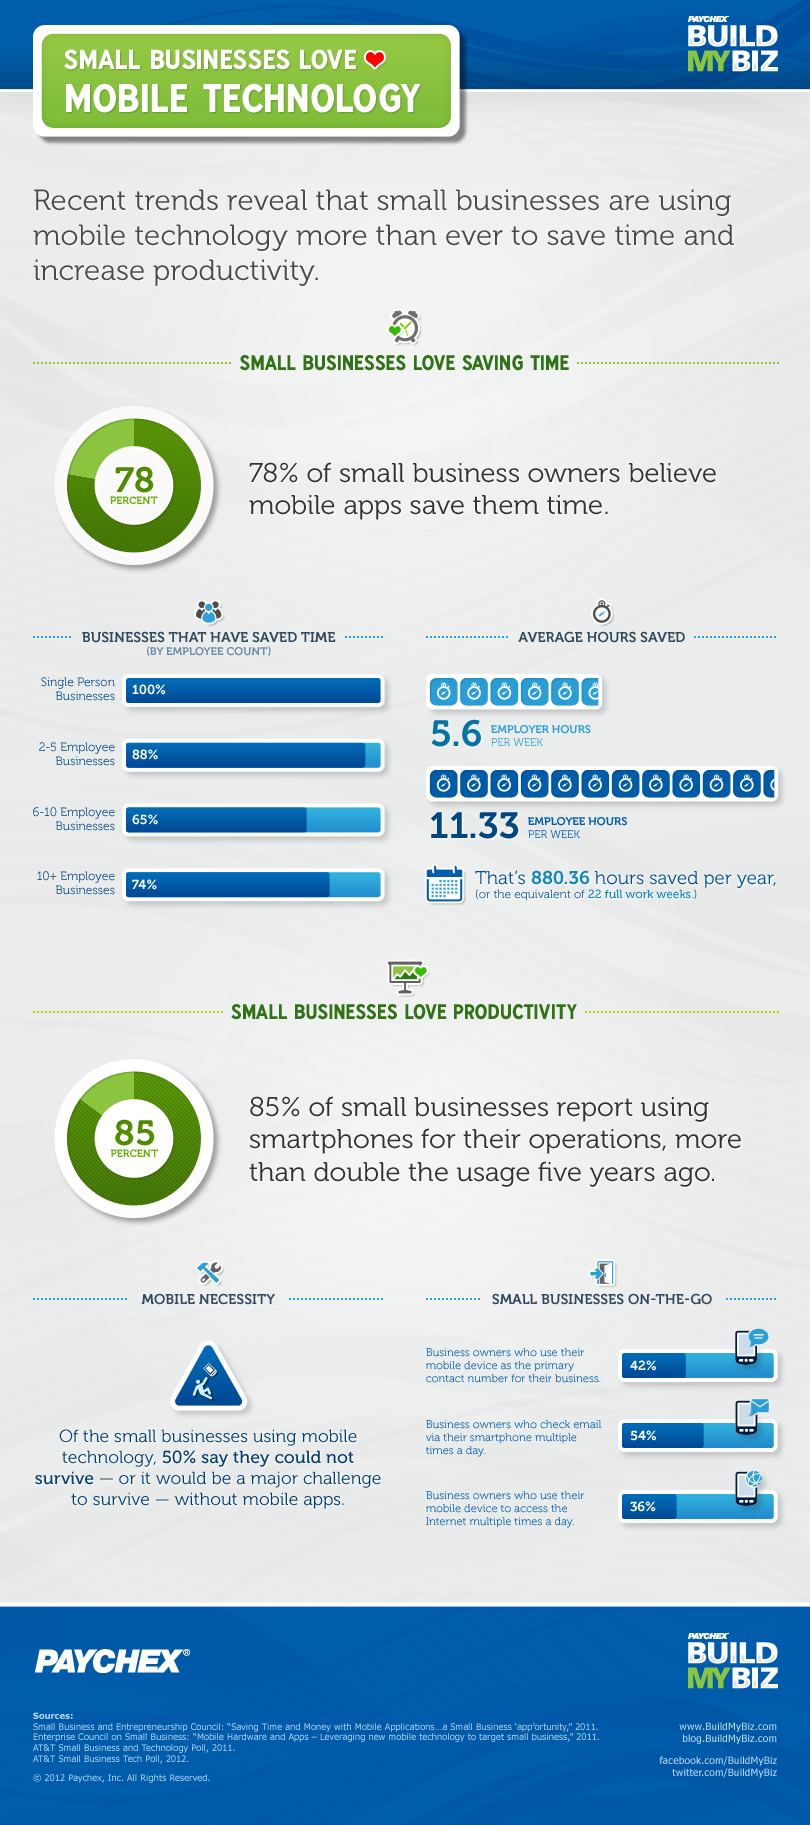 Small-Businesses-Love-Mobile-Technology-infographic